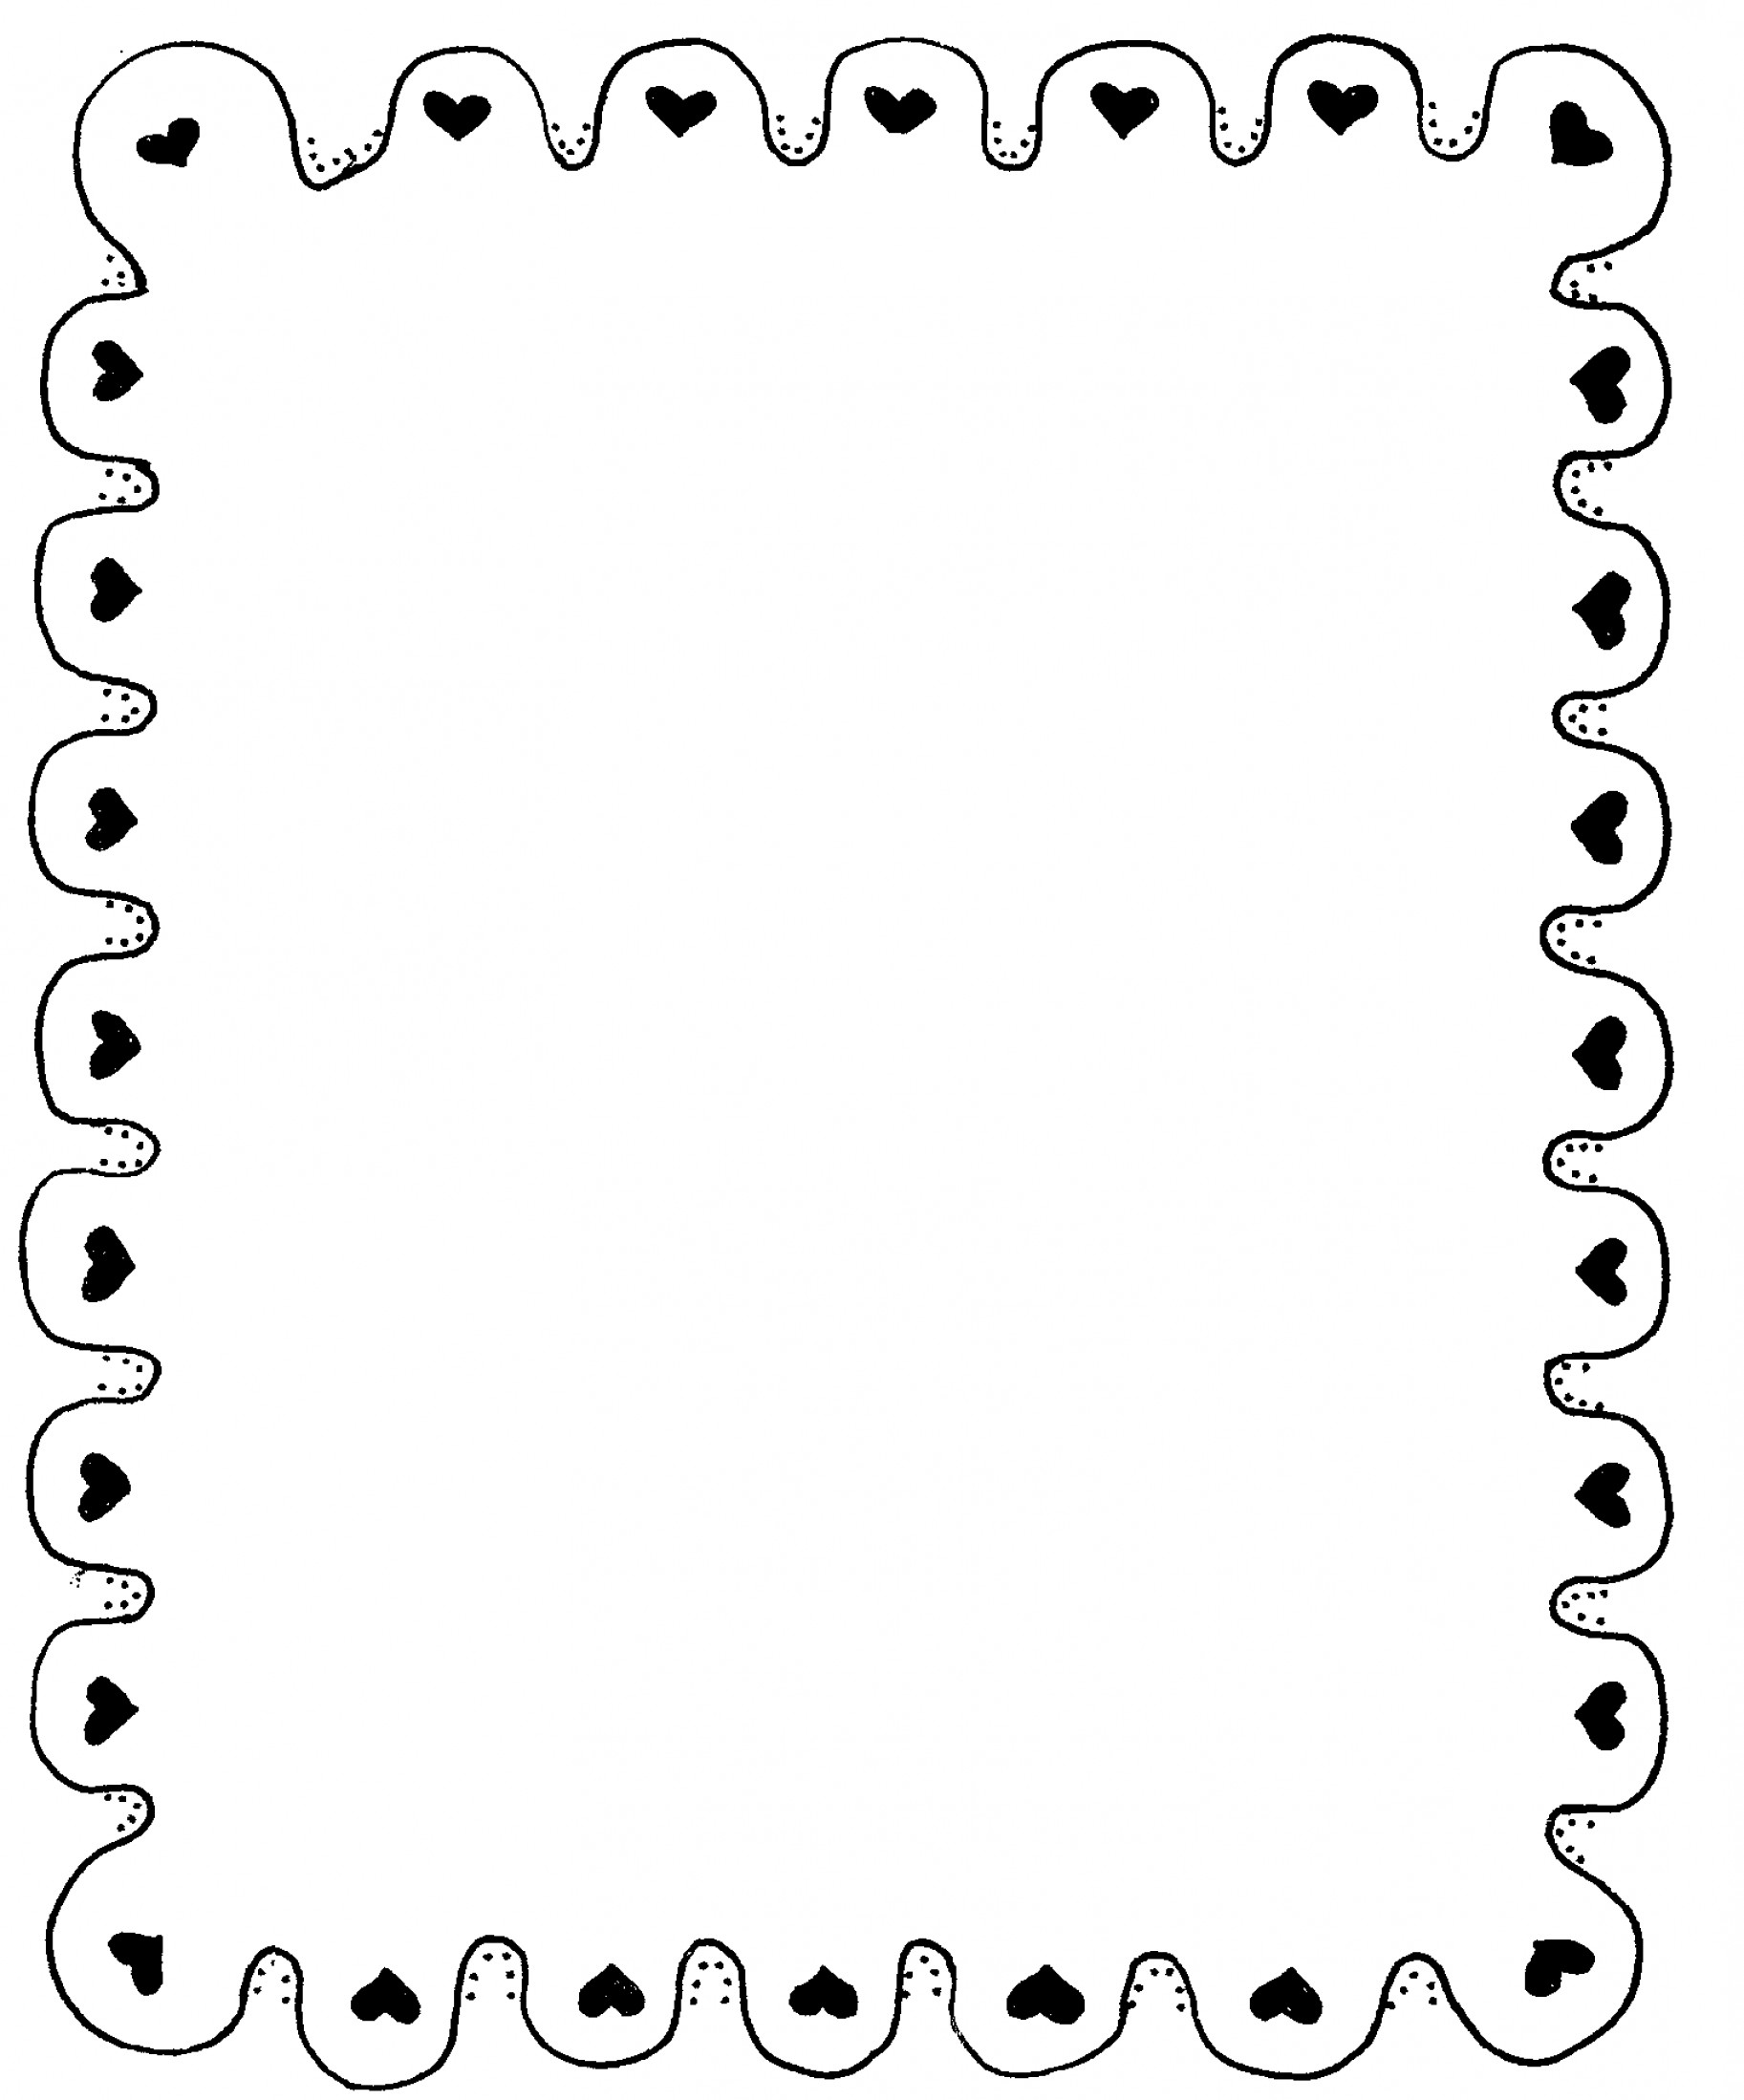 Best Black And White Heart Border Vector Draw.